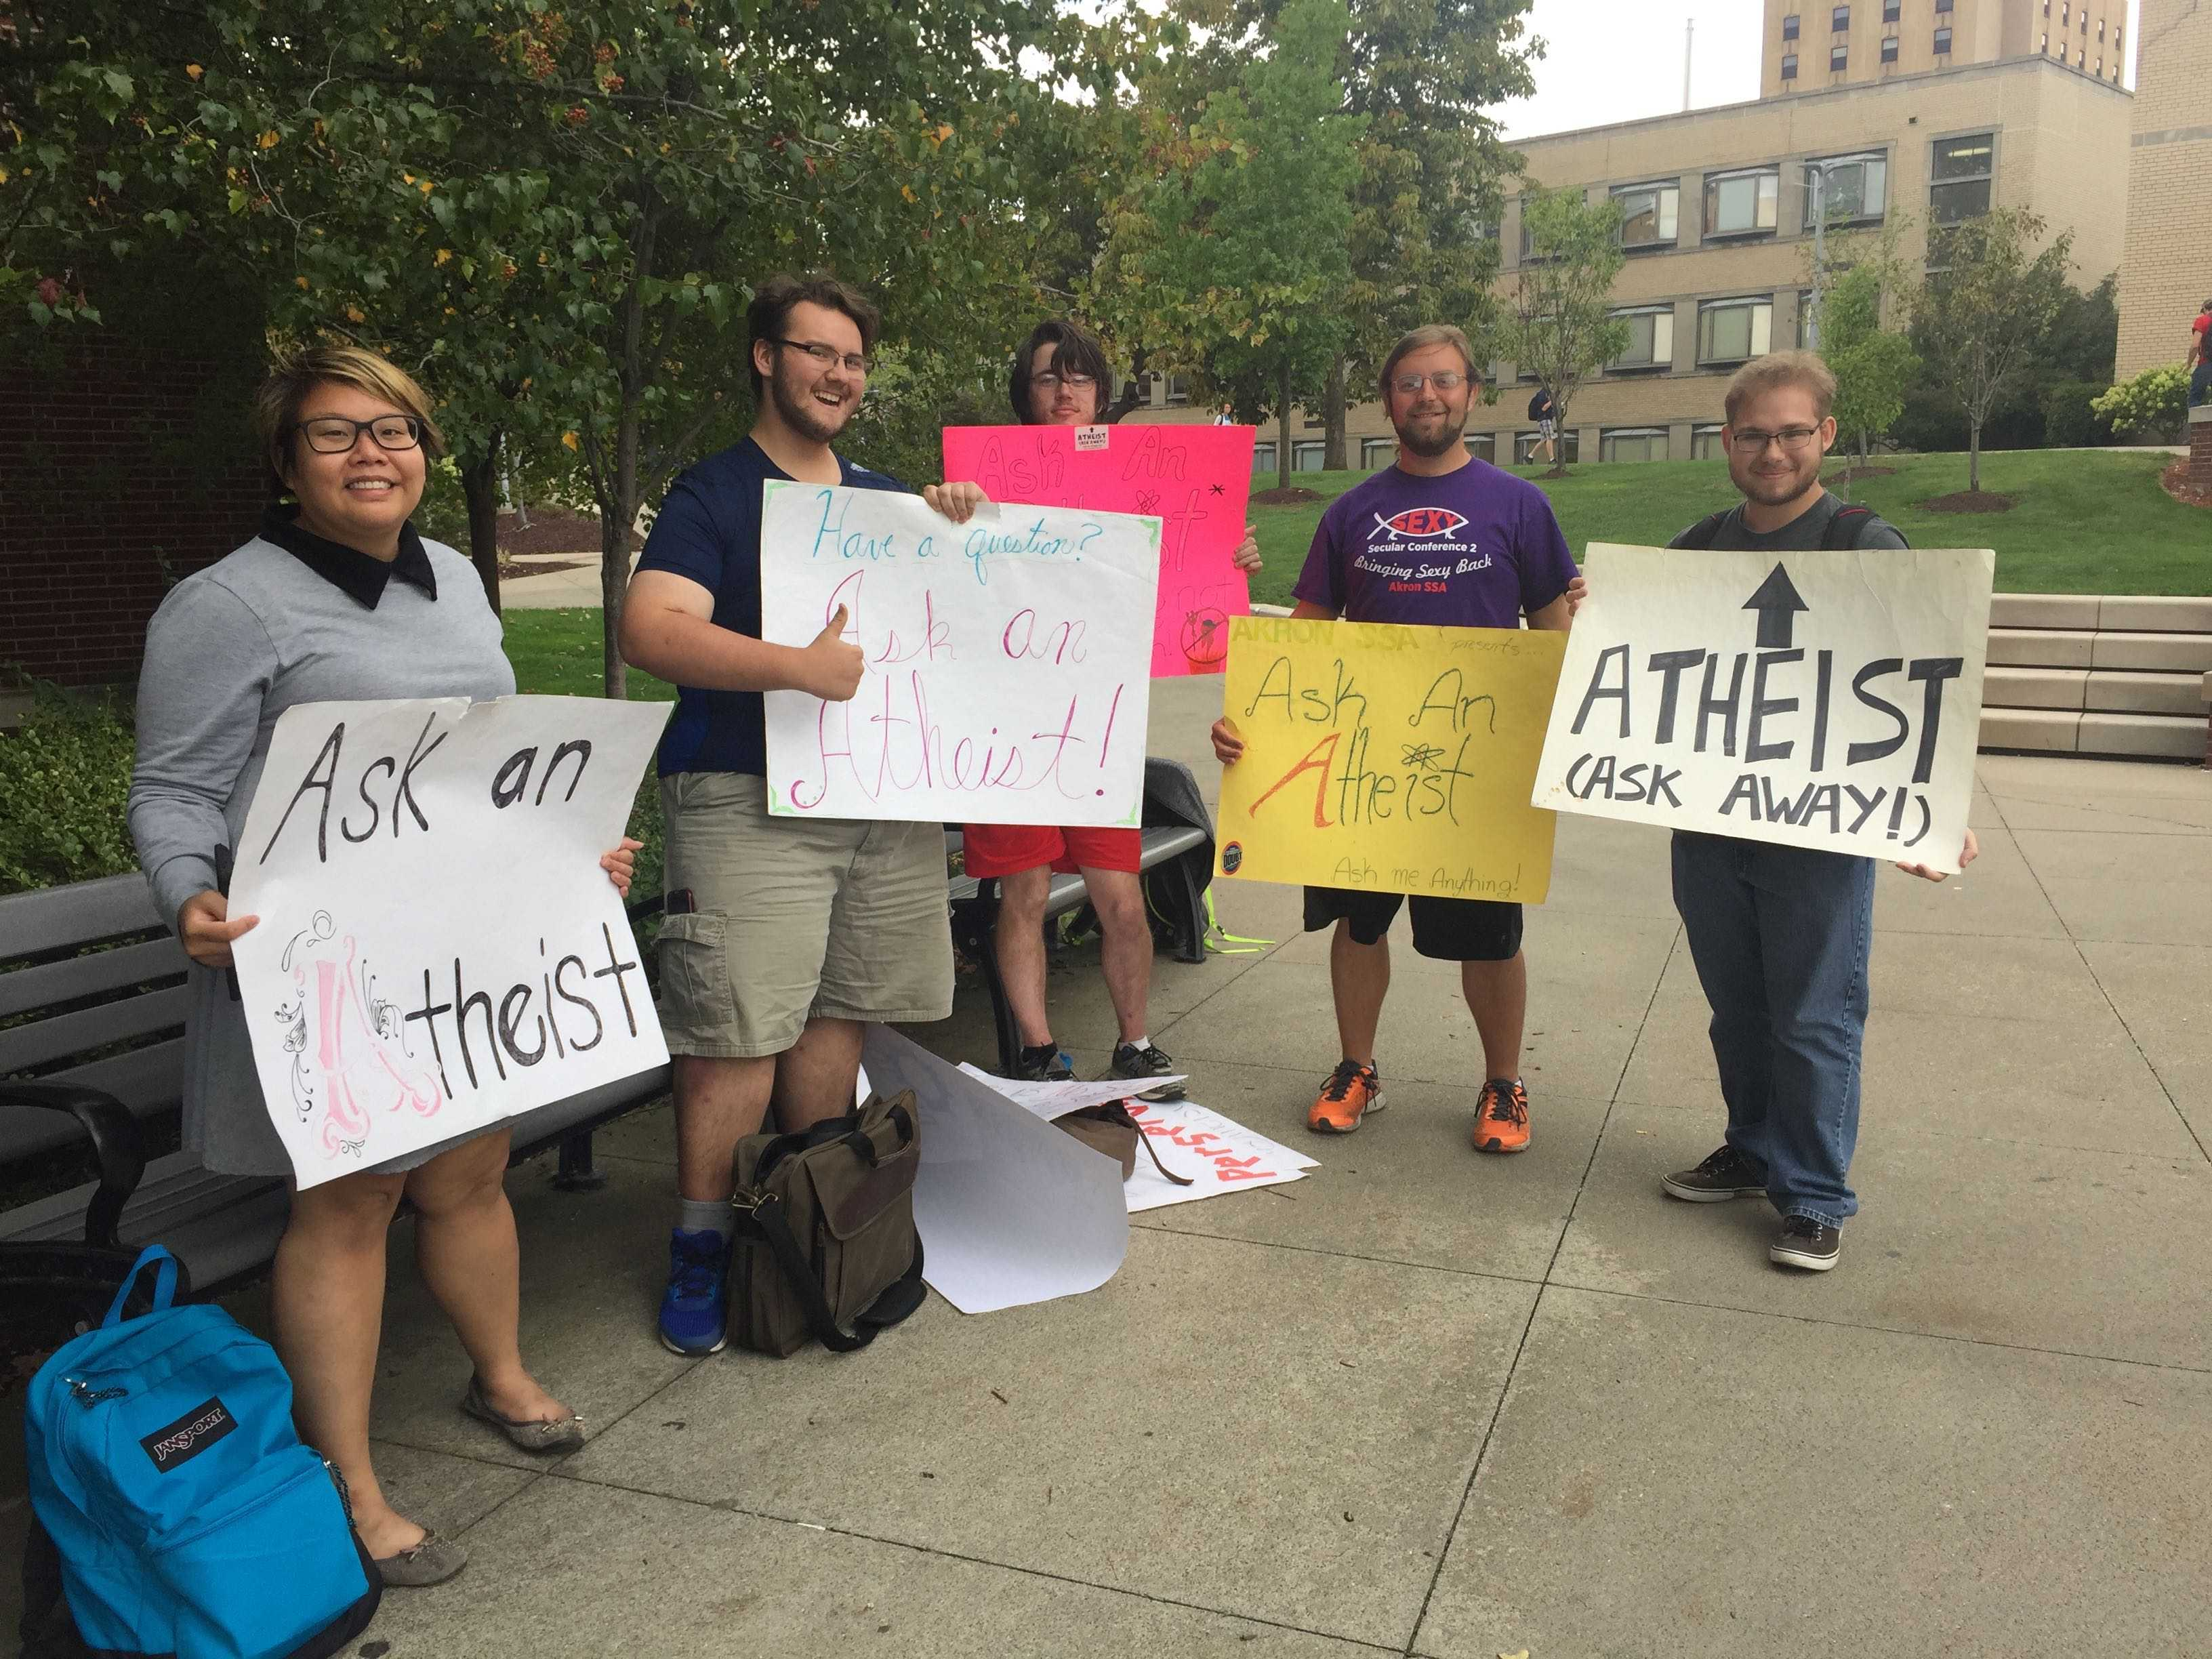 Members of the Secular Student Alliance Van Tran, Daniel Schuhmacher, Nicholas Hurt, Nicholas Kogovosek, and Ron Swanson hold up signs at their annual